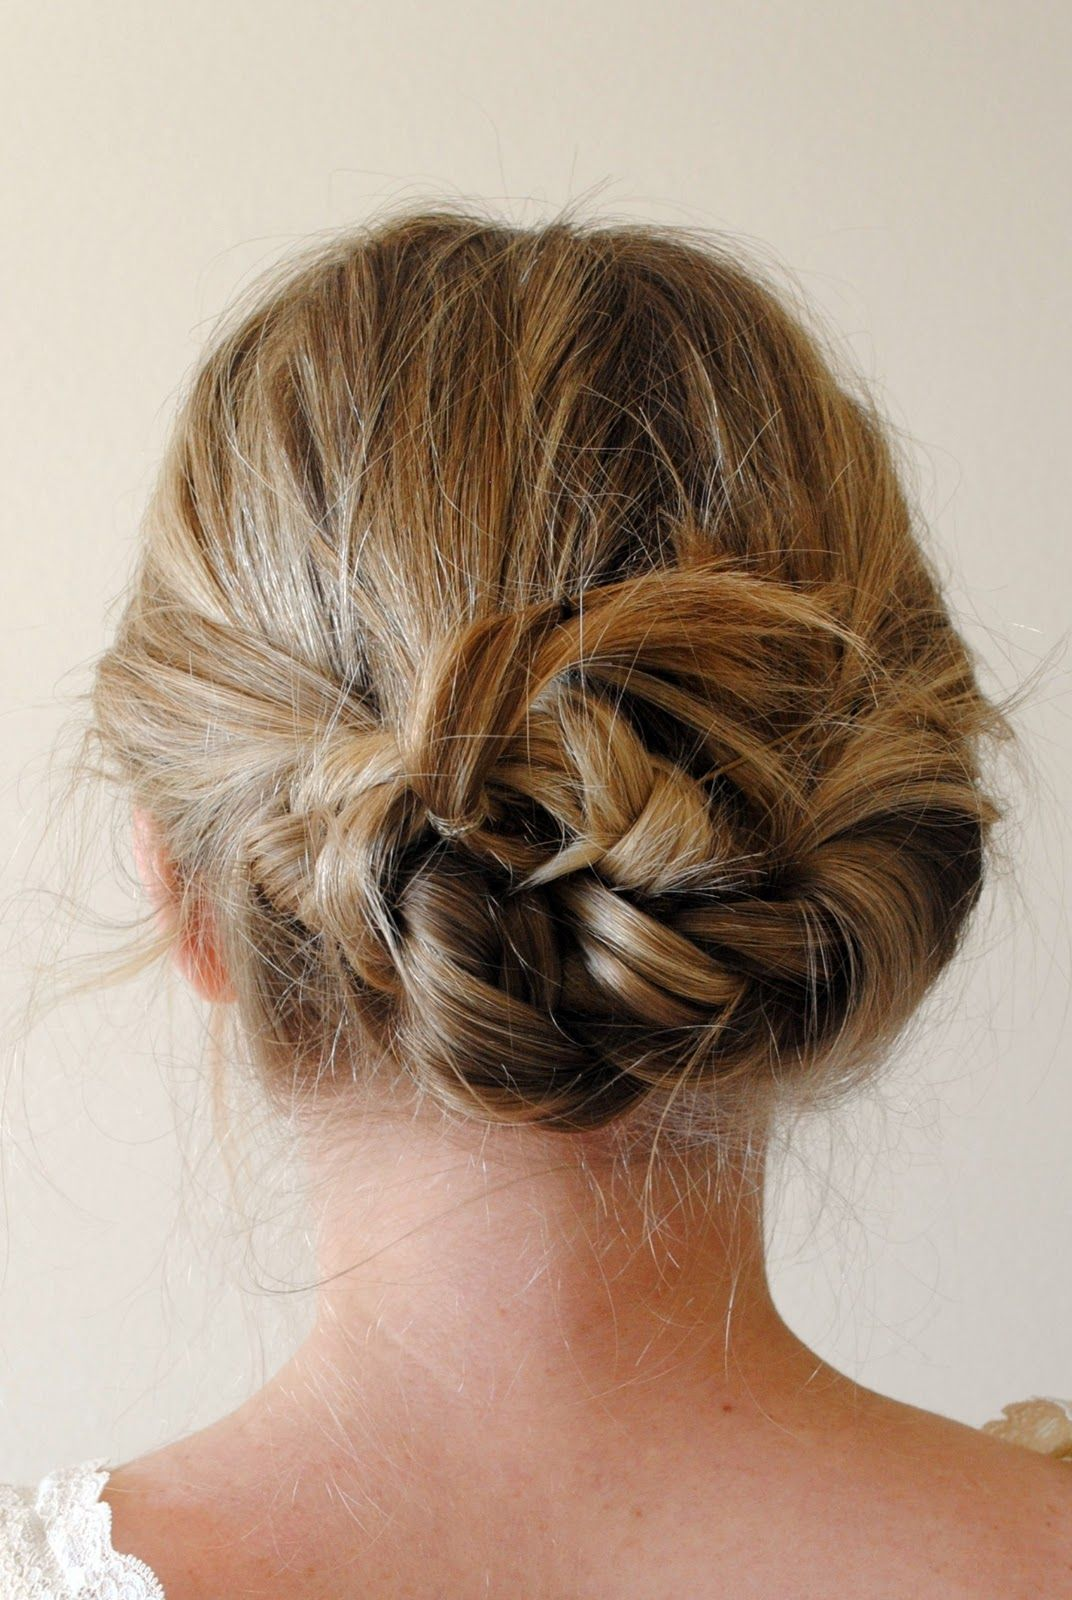 braid hair like putting it in pigtails, tie the braids in a knot, and pin back whatever you don't want flipping out